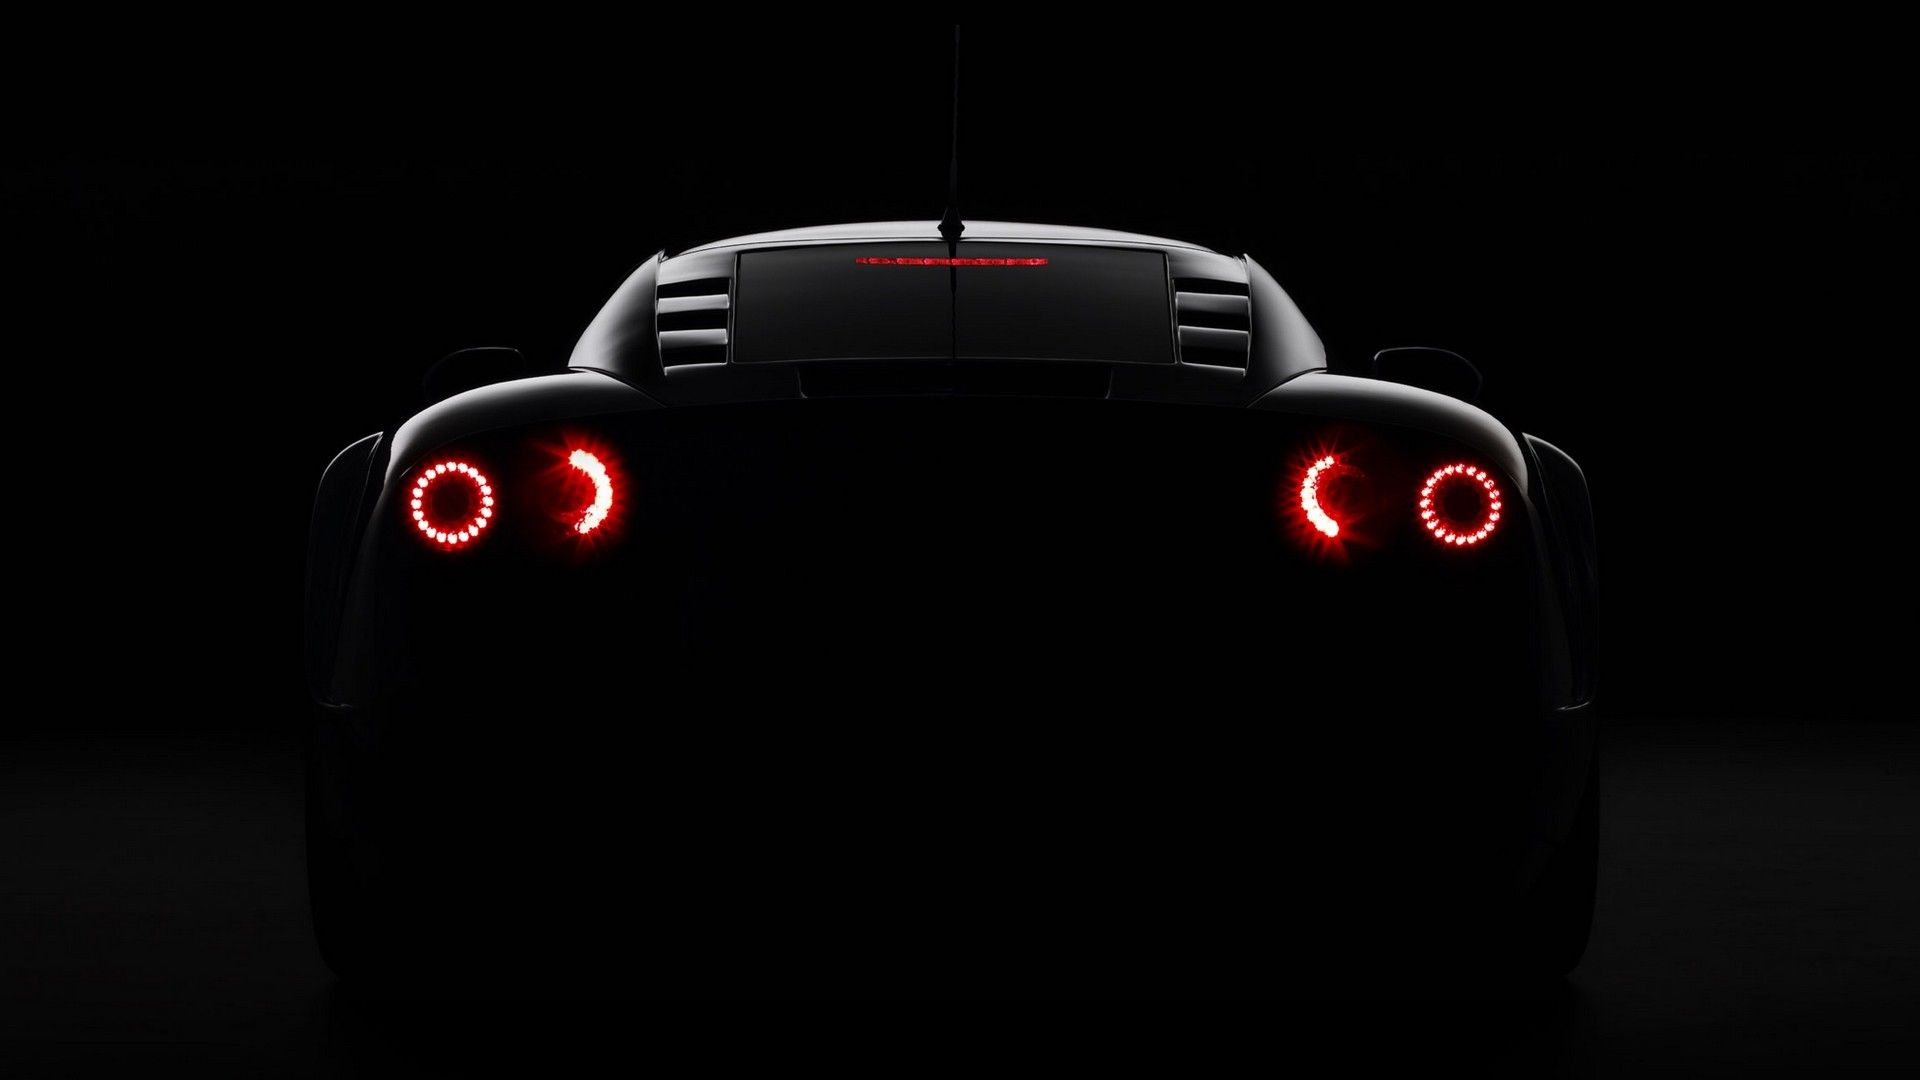 Noble M600 Dark Glowing Rear Angle View Sports Car Wallpaper